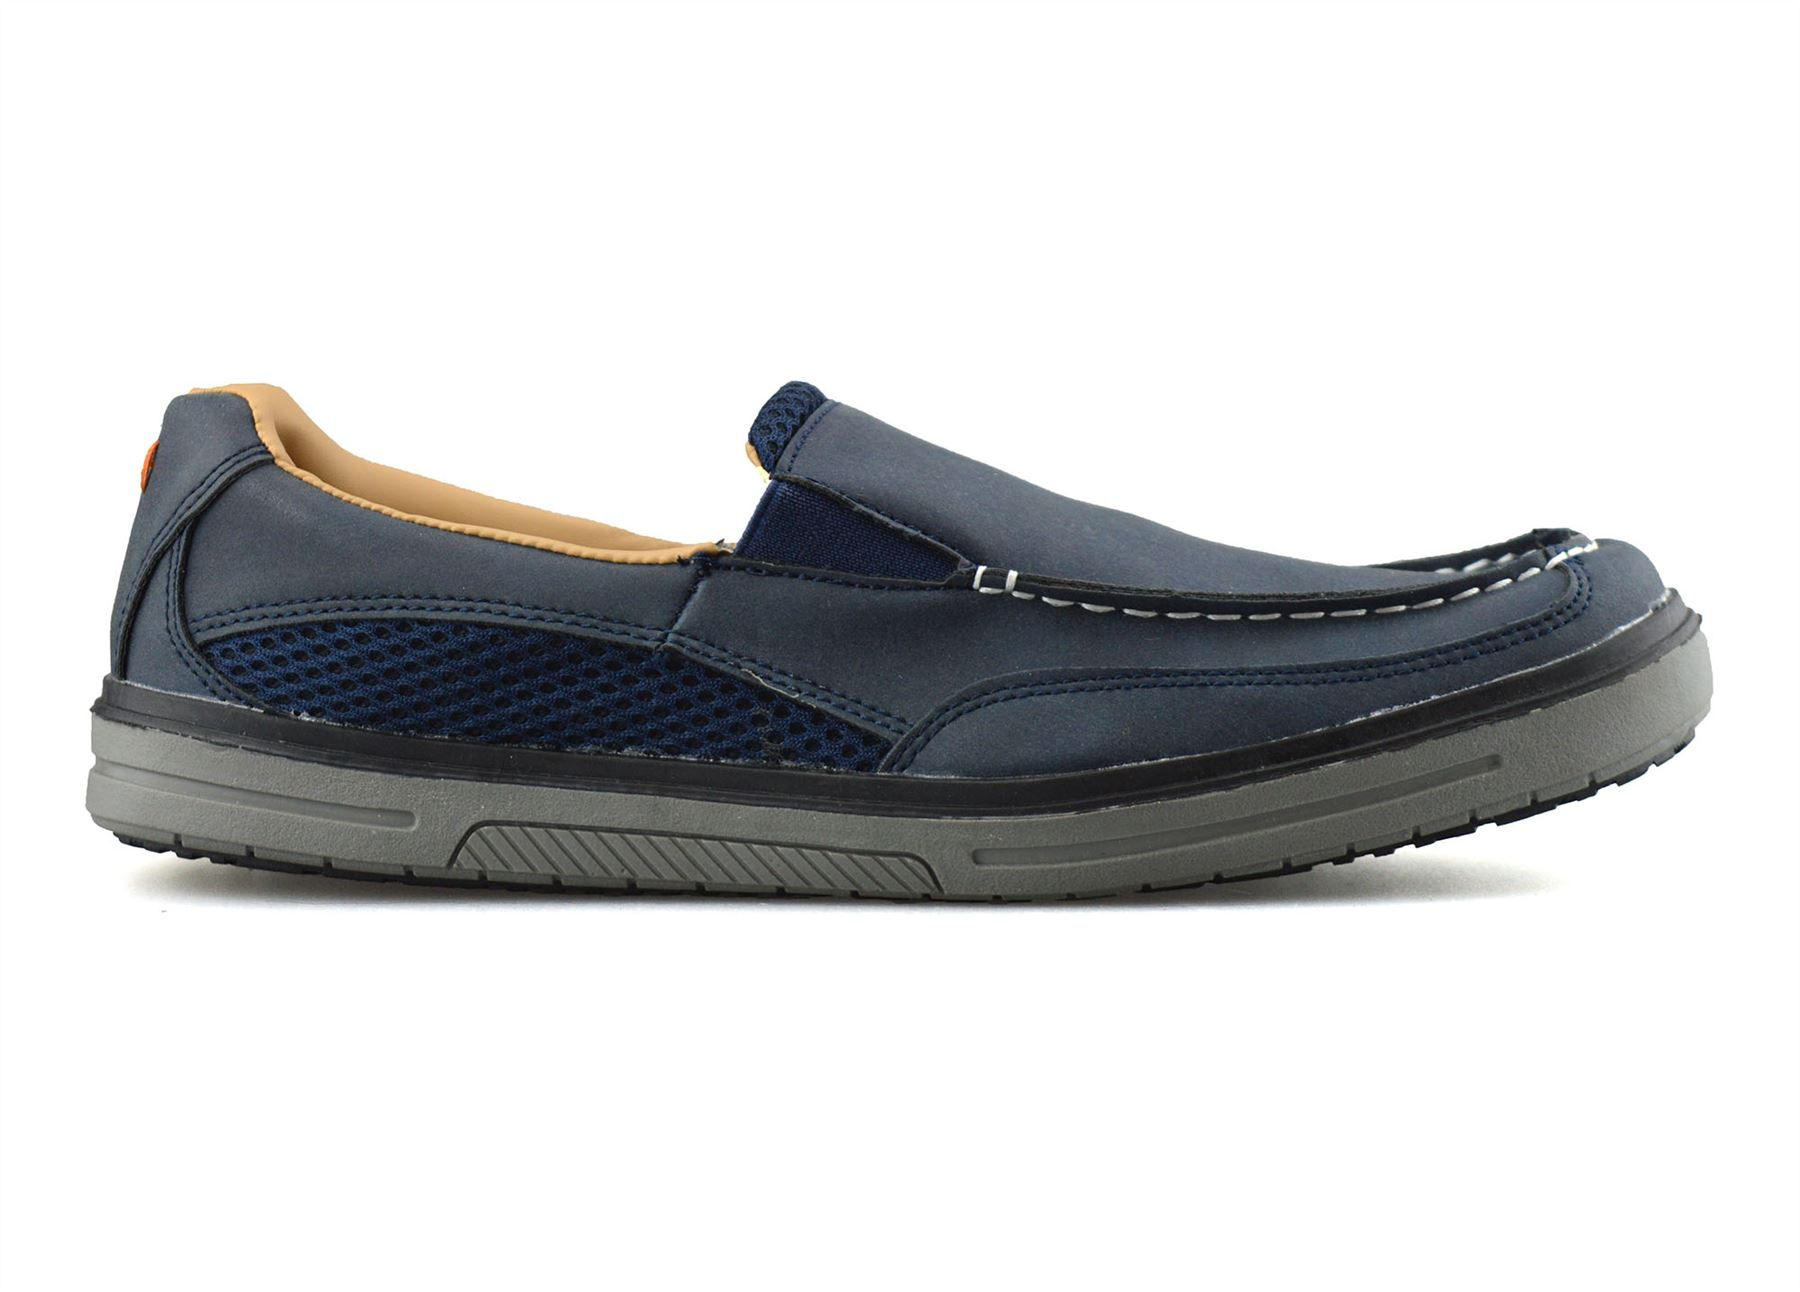 Mens-Casual-Memory-Foam-Slip-On-Walking-Loafers-Moccasin-Driving-Boat-Shoes-Size thumbnail 24